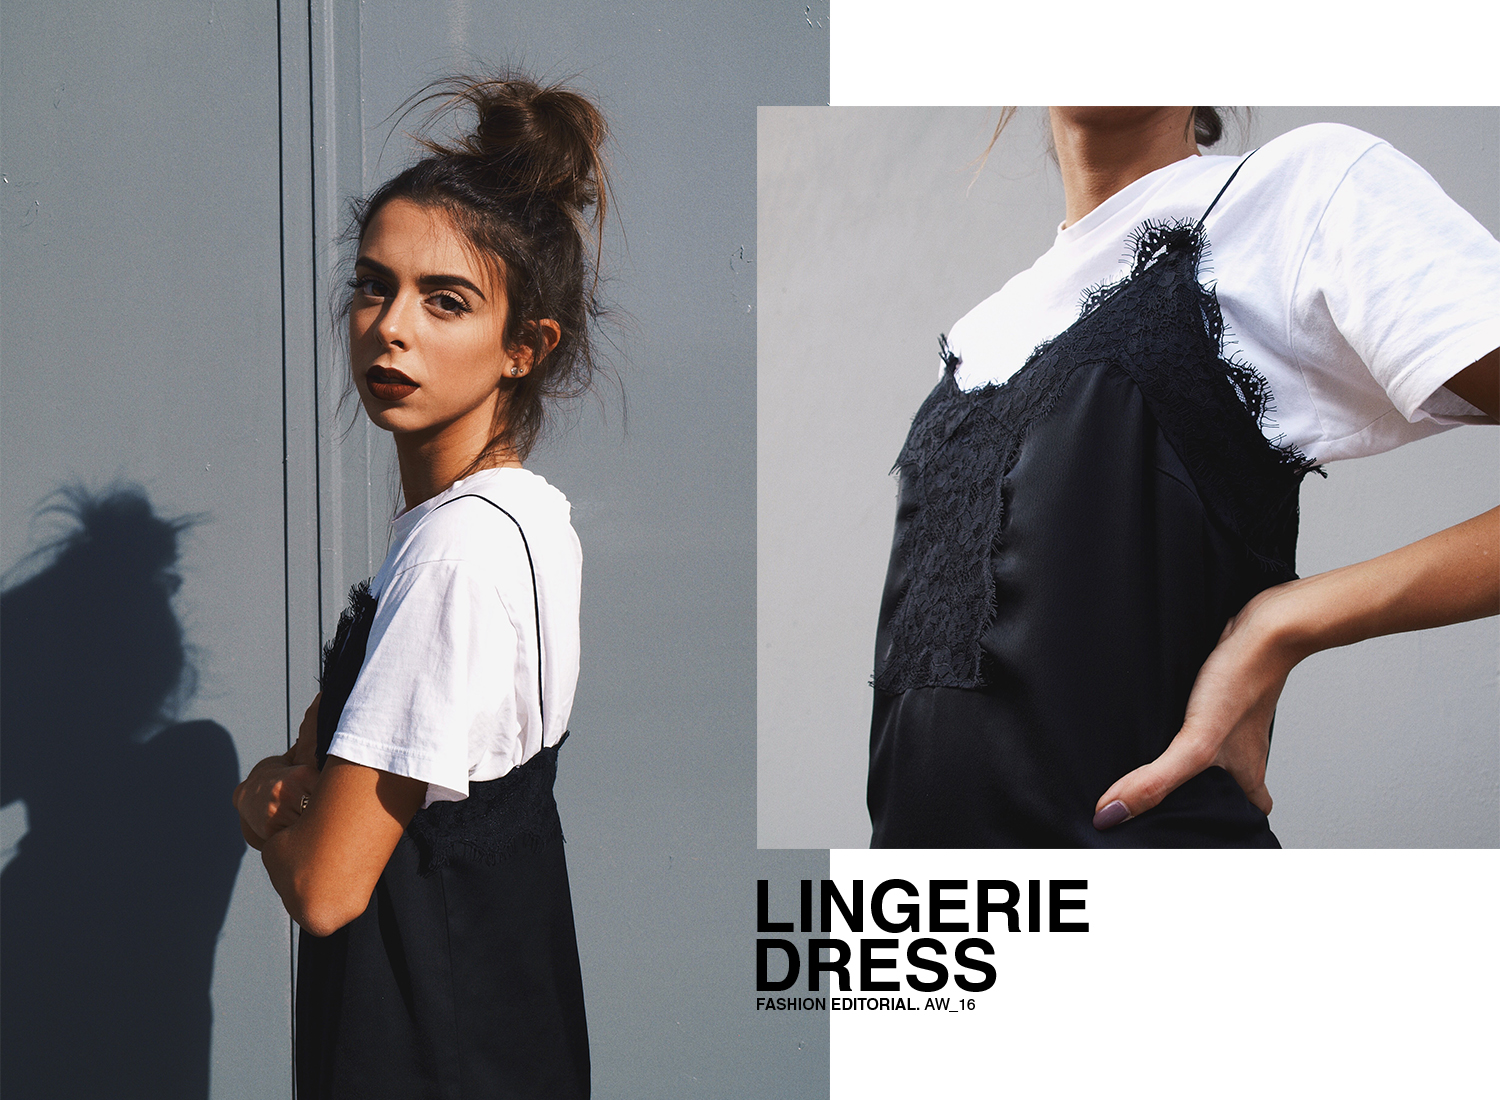 lingerie-dress-stradivarius-blackdress-thirt-sous-une-robe-blogger-hendaye-coastalandco-superposition